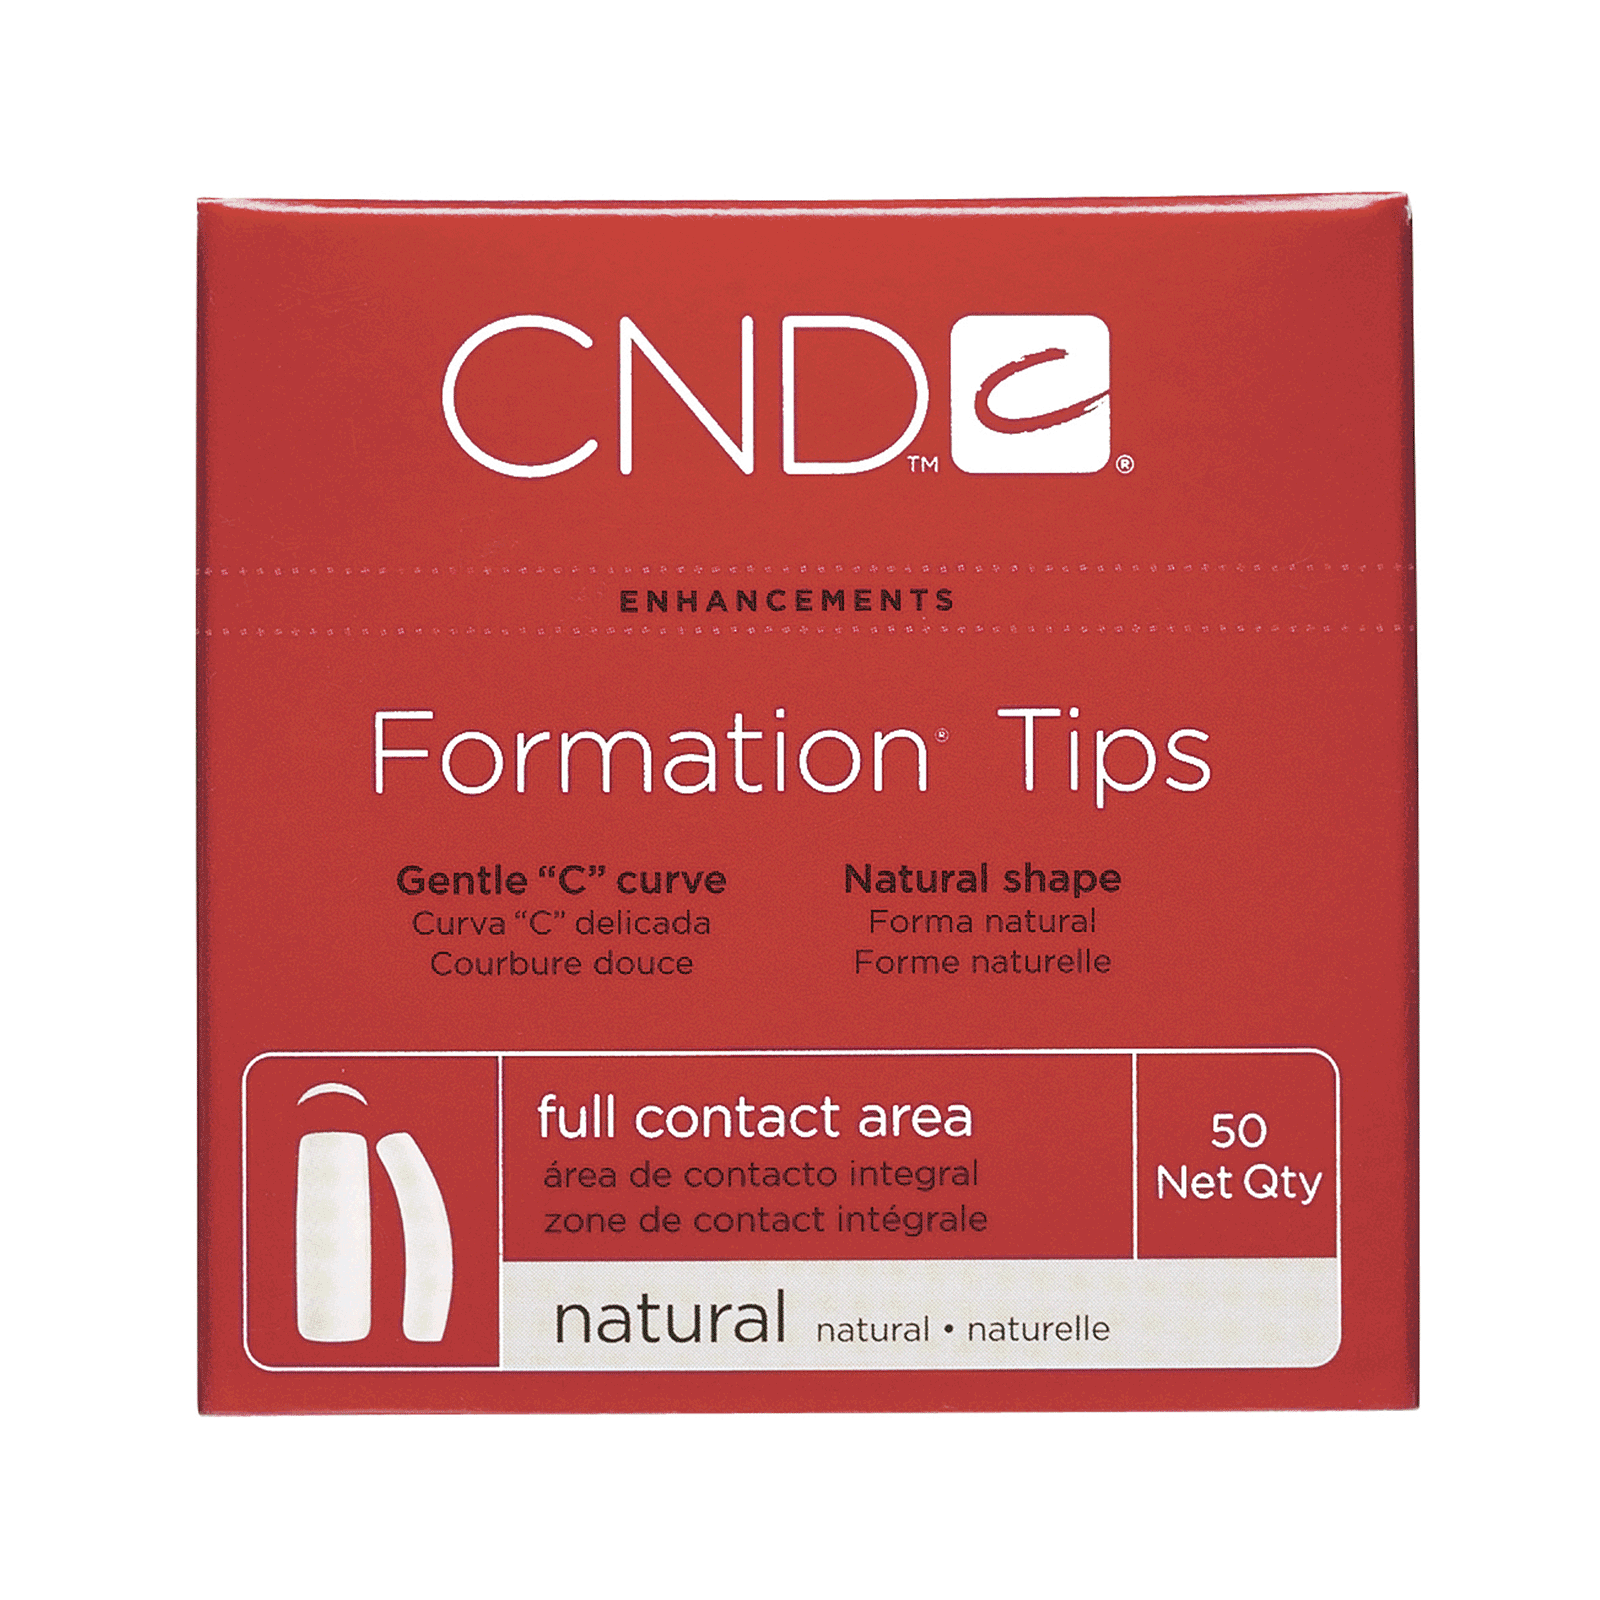 Formation Tips #3